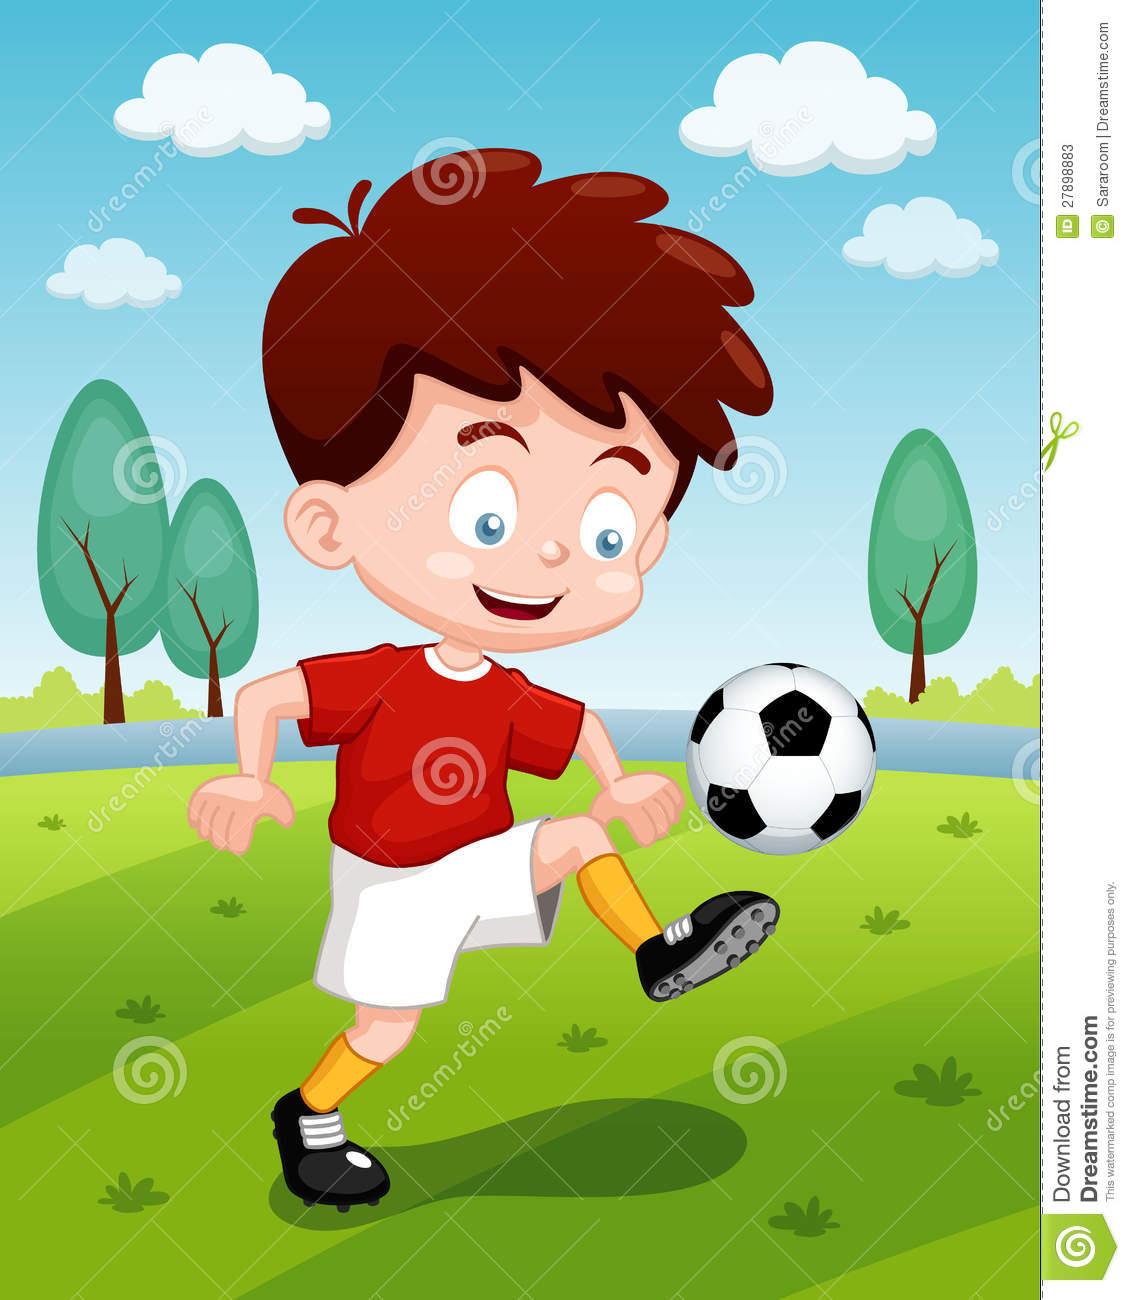 cartoon boy playing soccer stock vector  illustration of game